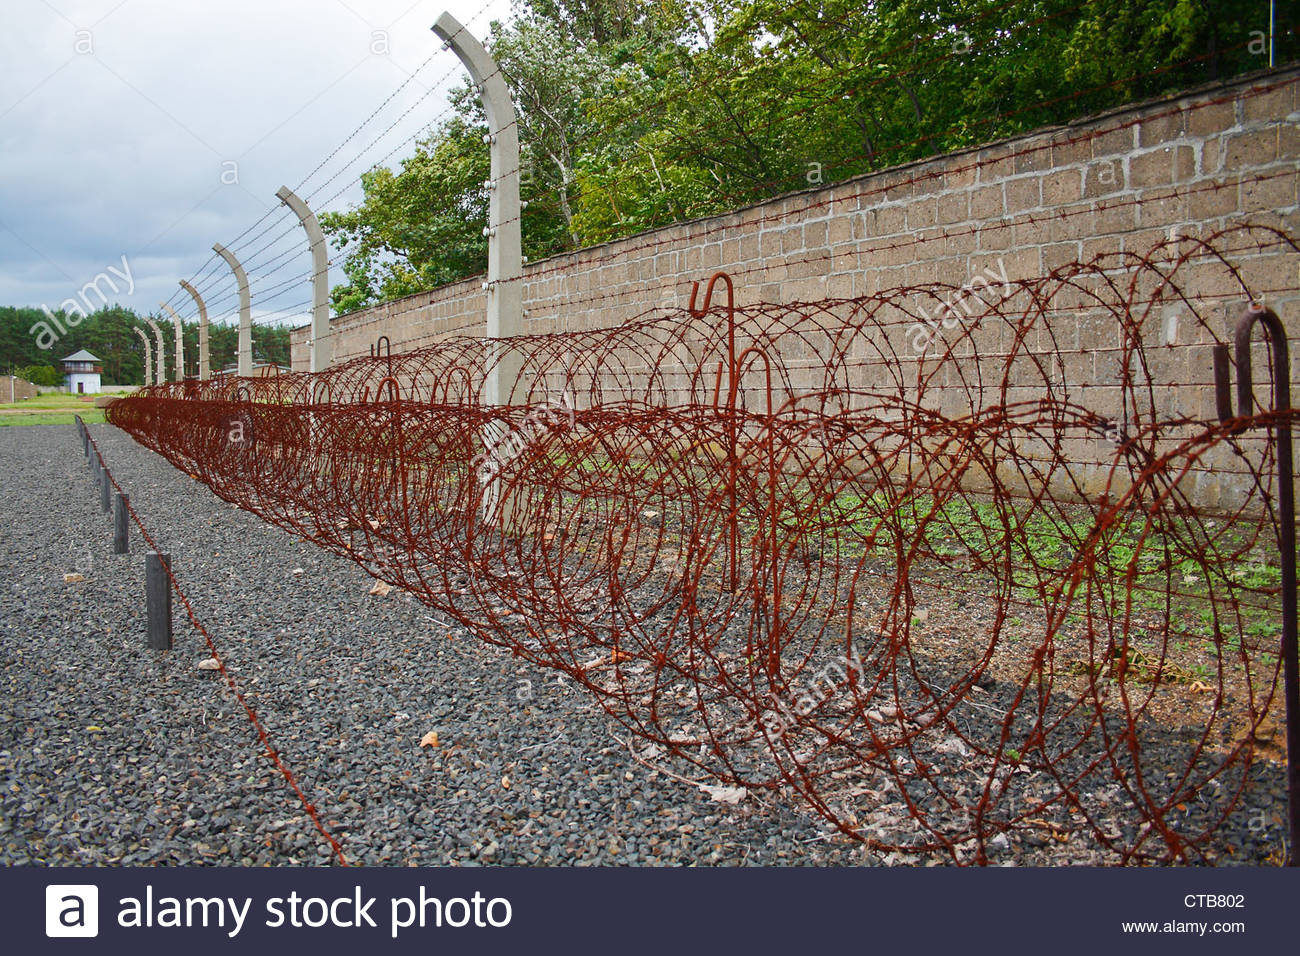 Wire fence Sachsenhausen concentration camp, in Oranienburg, Germany. - Stock Image